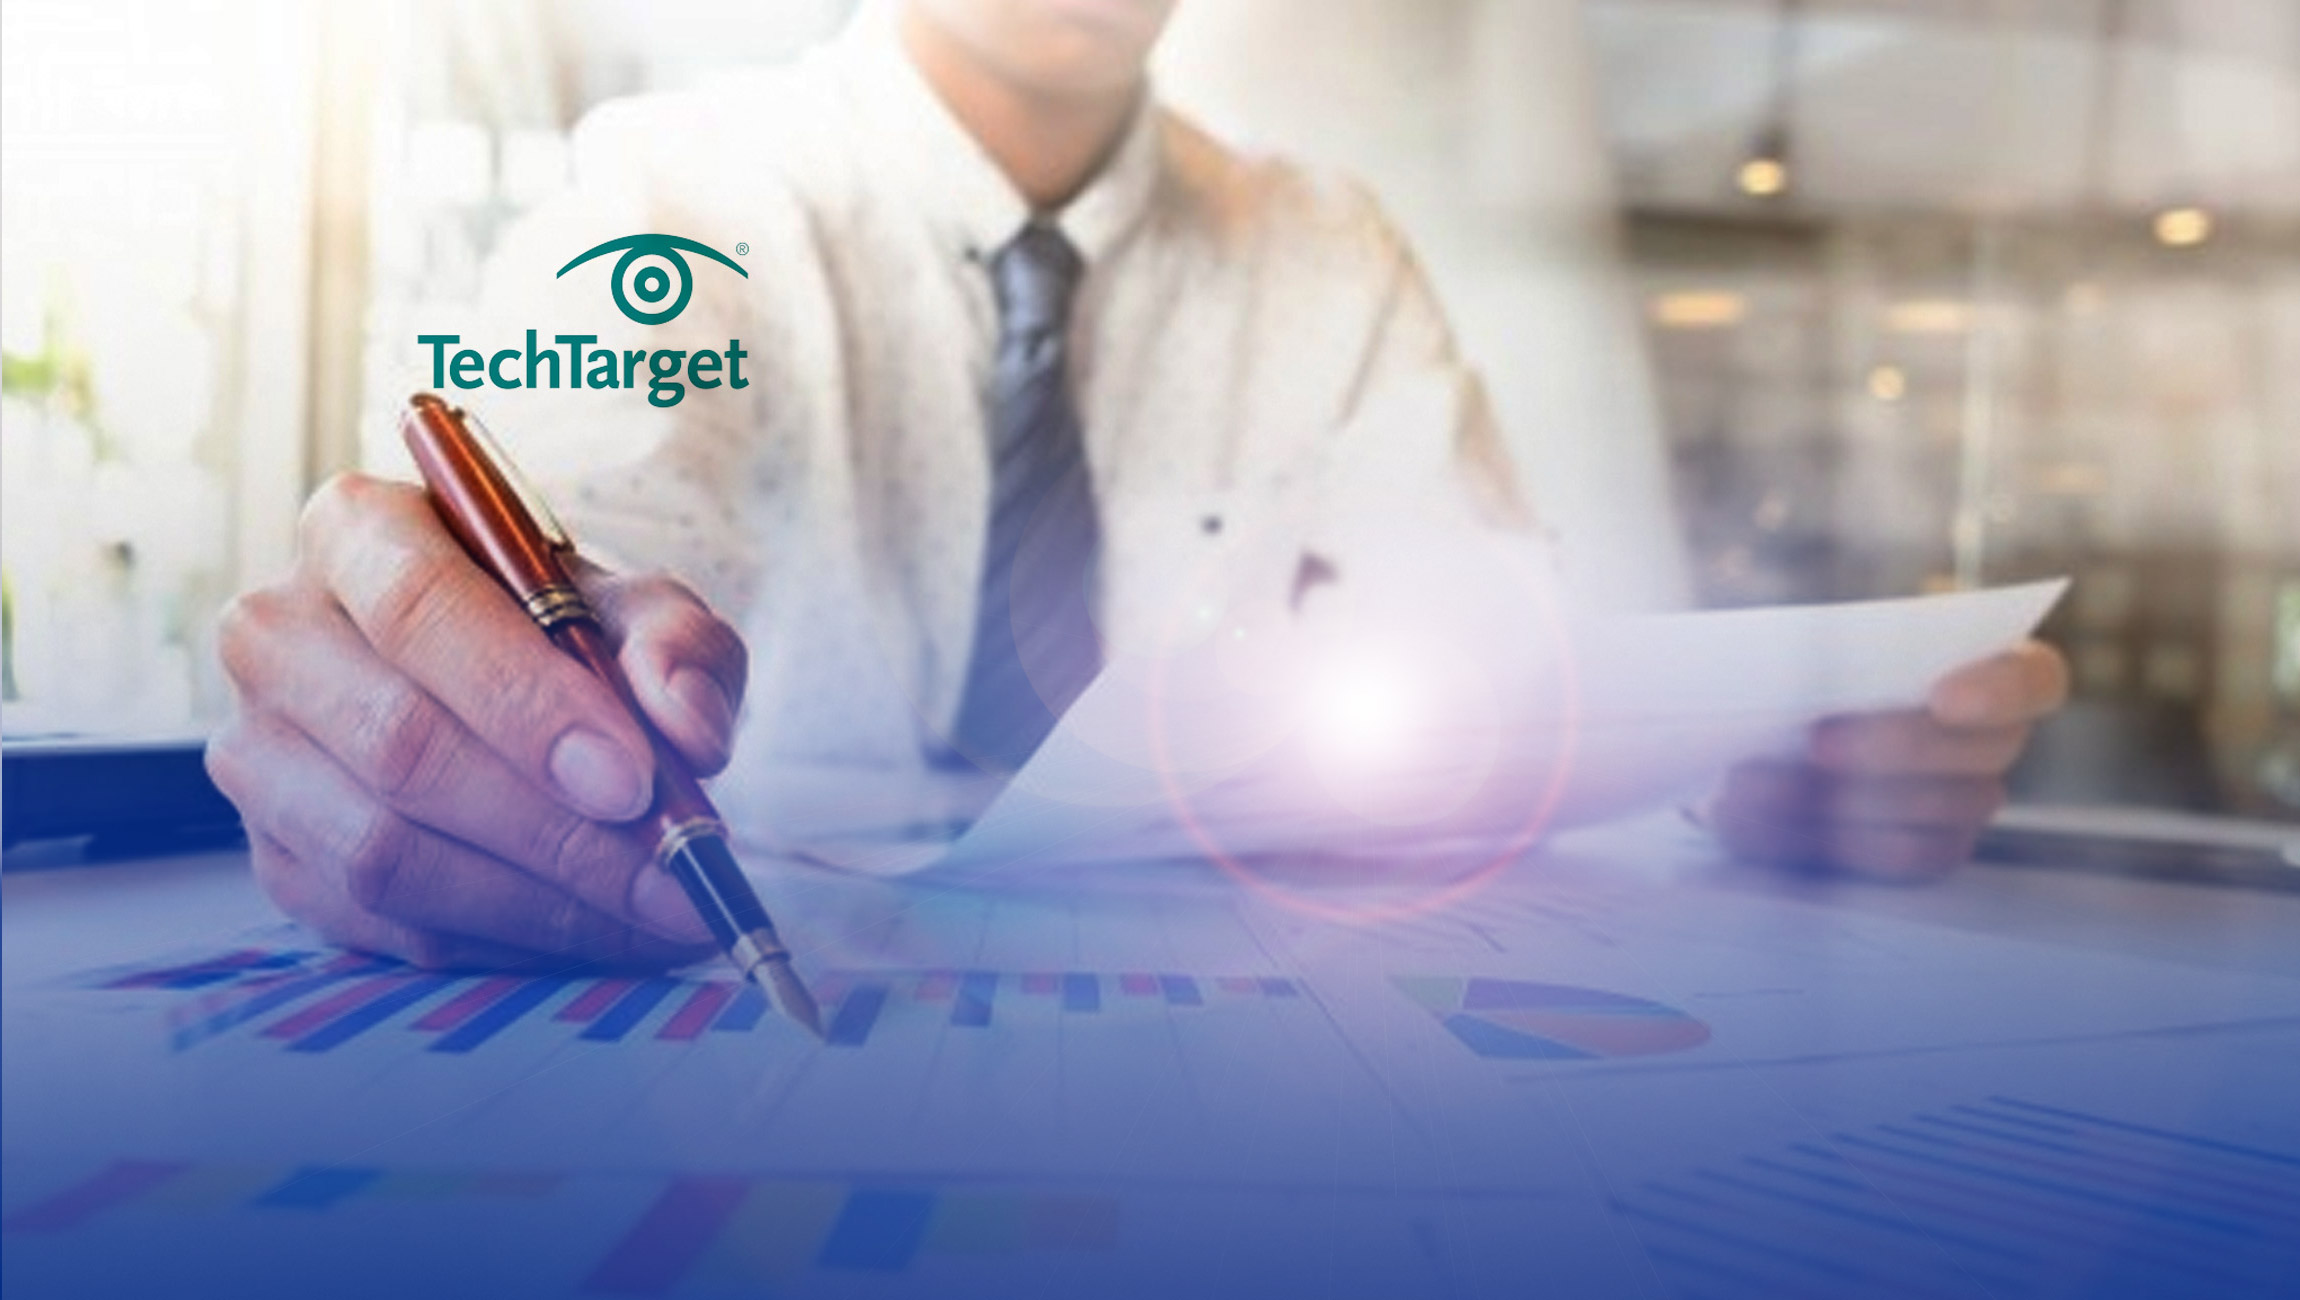 TechTarget Named a Leader in Multiple G2 Grid® Reports on Buyer Intent Data, Marketing Intelligence and Sales Intelligence for Fourth Consecutive Quarter